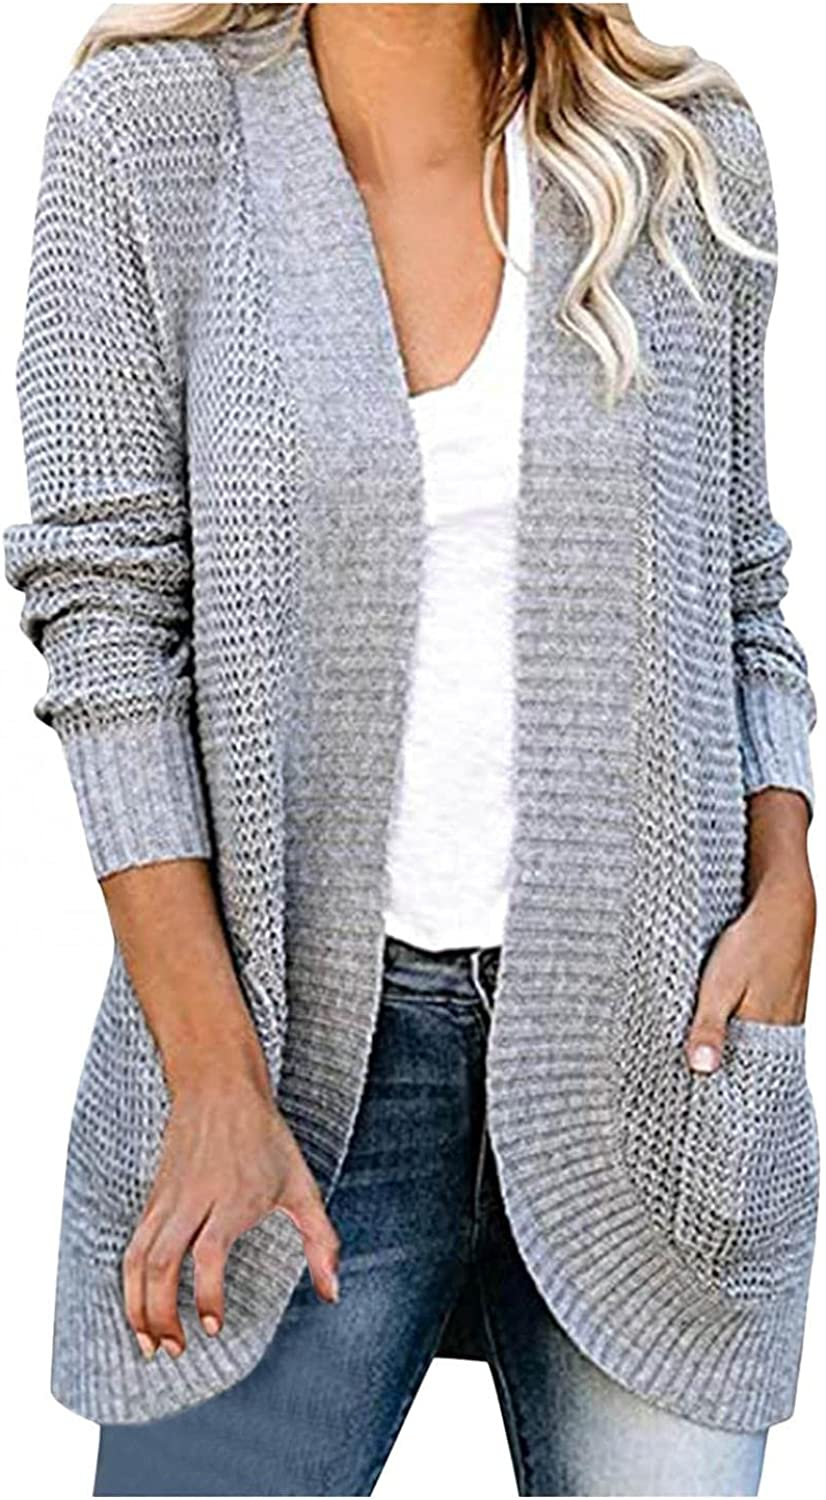 PASHY Womens Open Front Cardigan with Pockets Buttons Long Sleeve Outwear Sweater Winter Casual Long Cardigans for Women